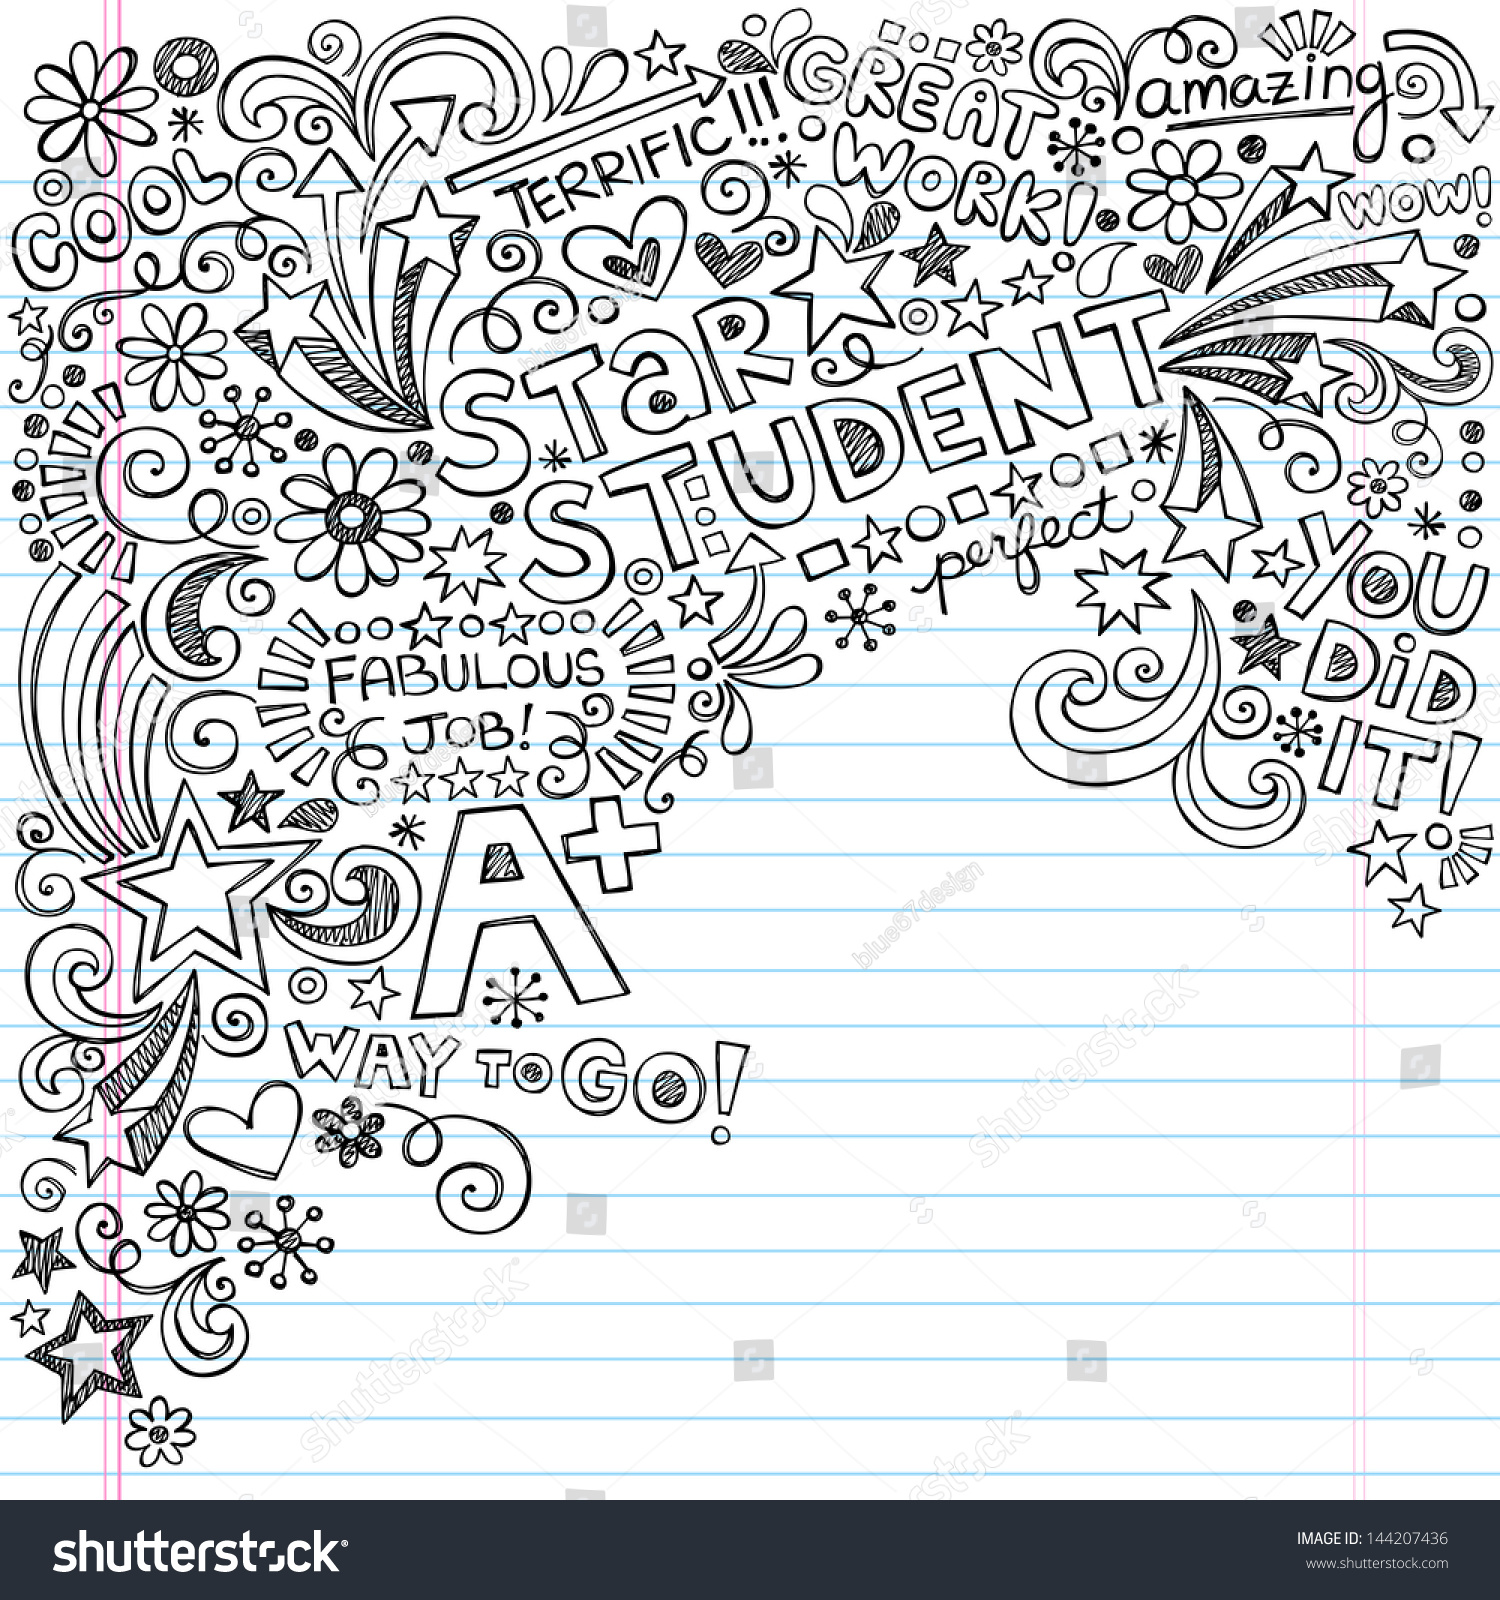 straight star student scribble inky doodles stock vector 144207436